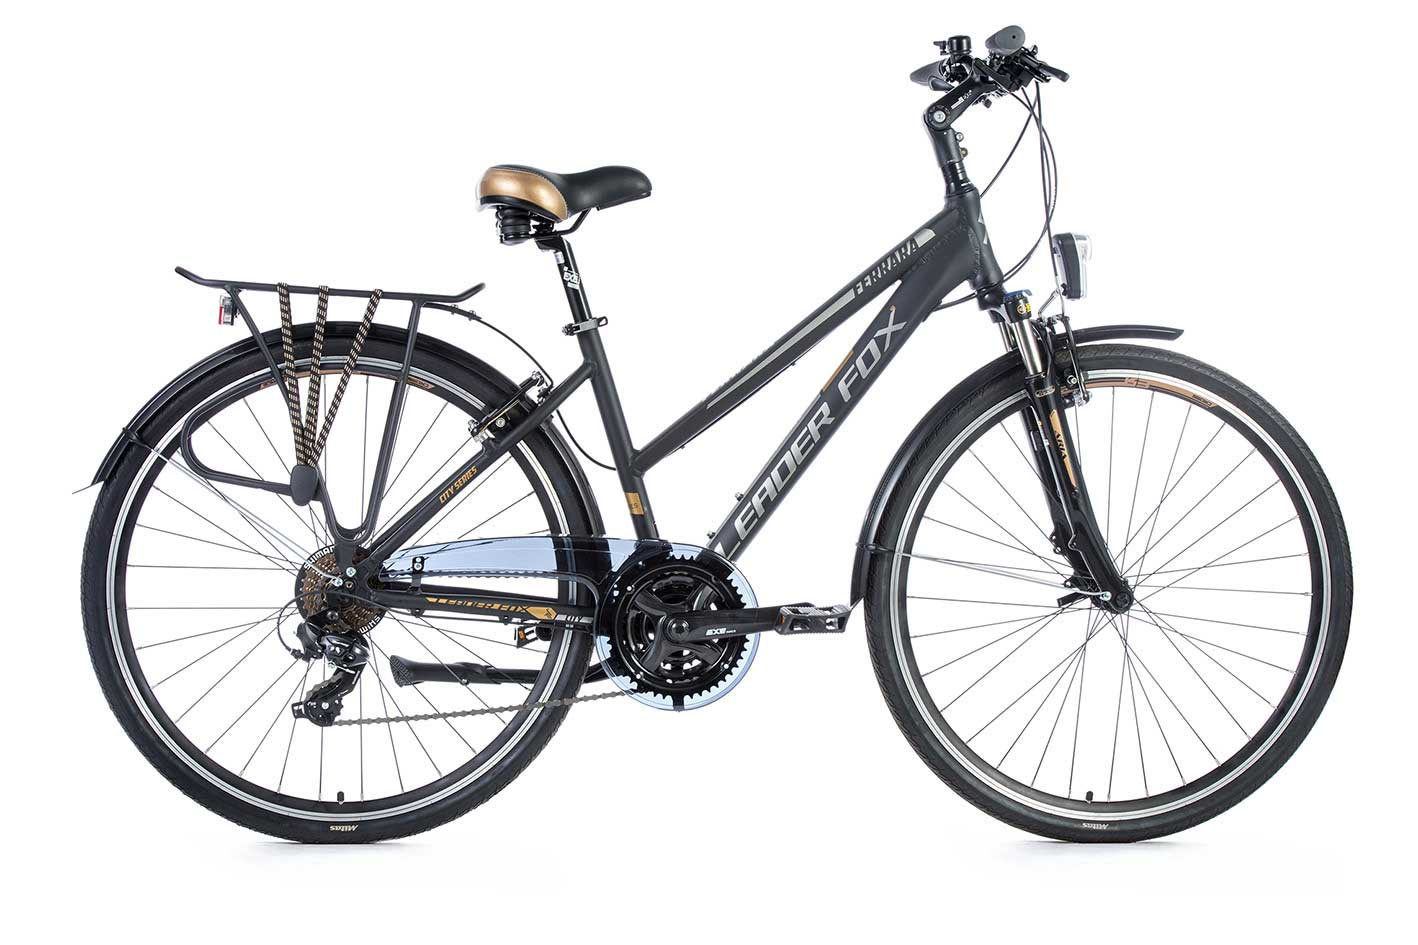 Bicicleta de Oras Leader Fox Ferrara Lady, 21 viteze, suspensie, lock out, roata 28 inch